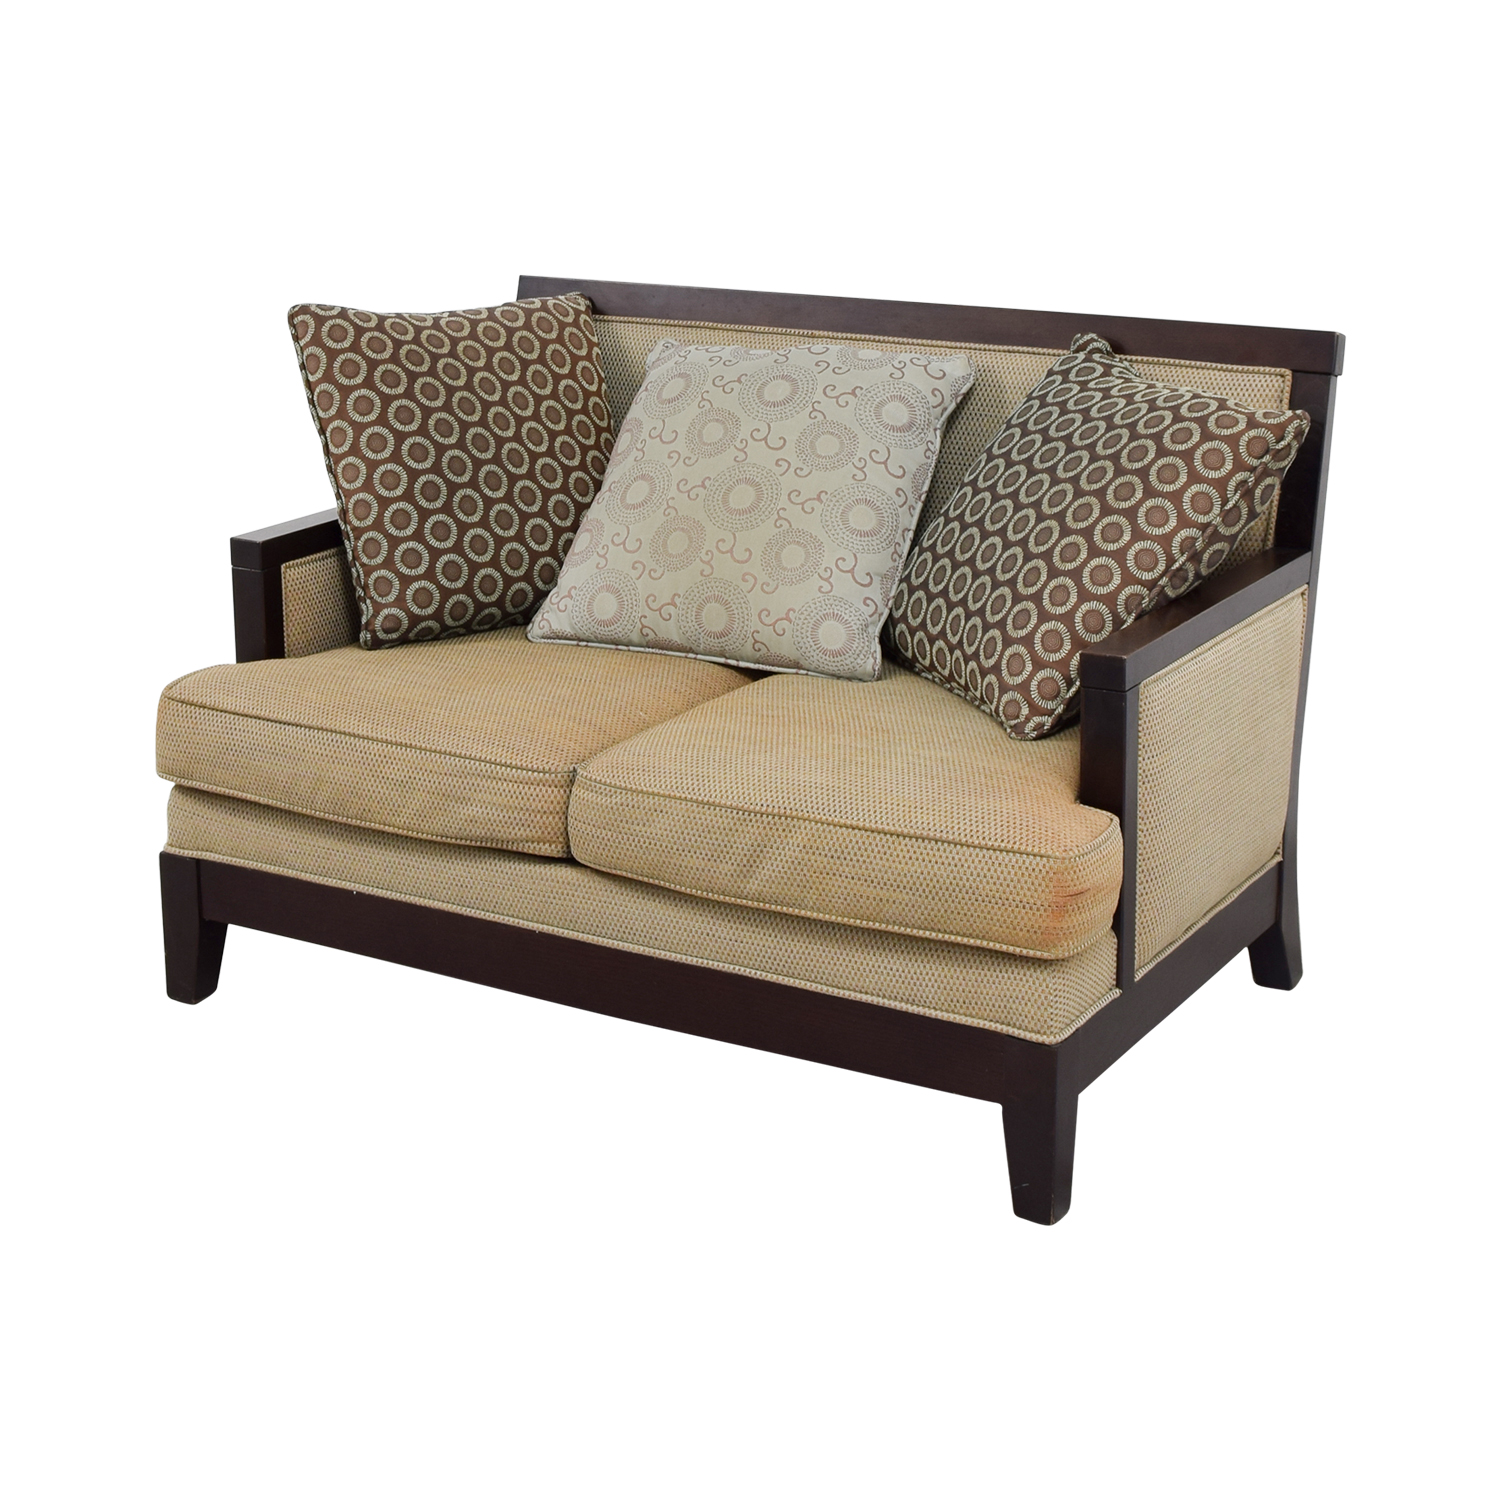 90 Off Tan With Wood Frame Love Seat Sofas